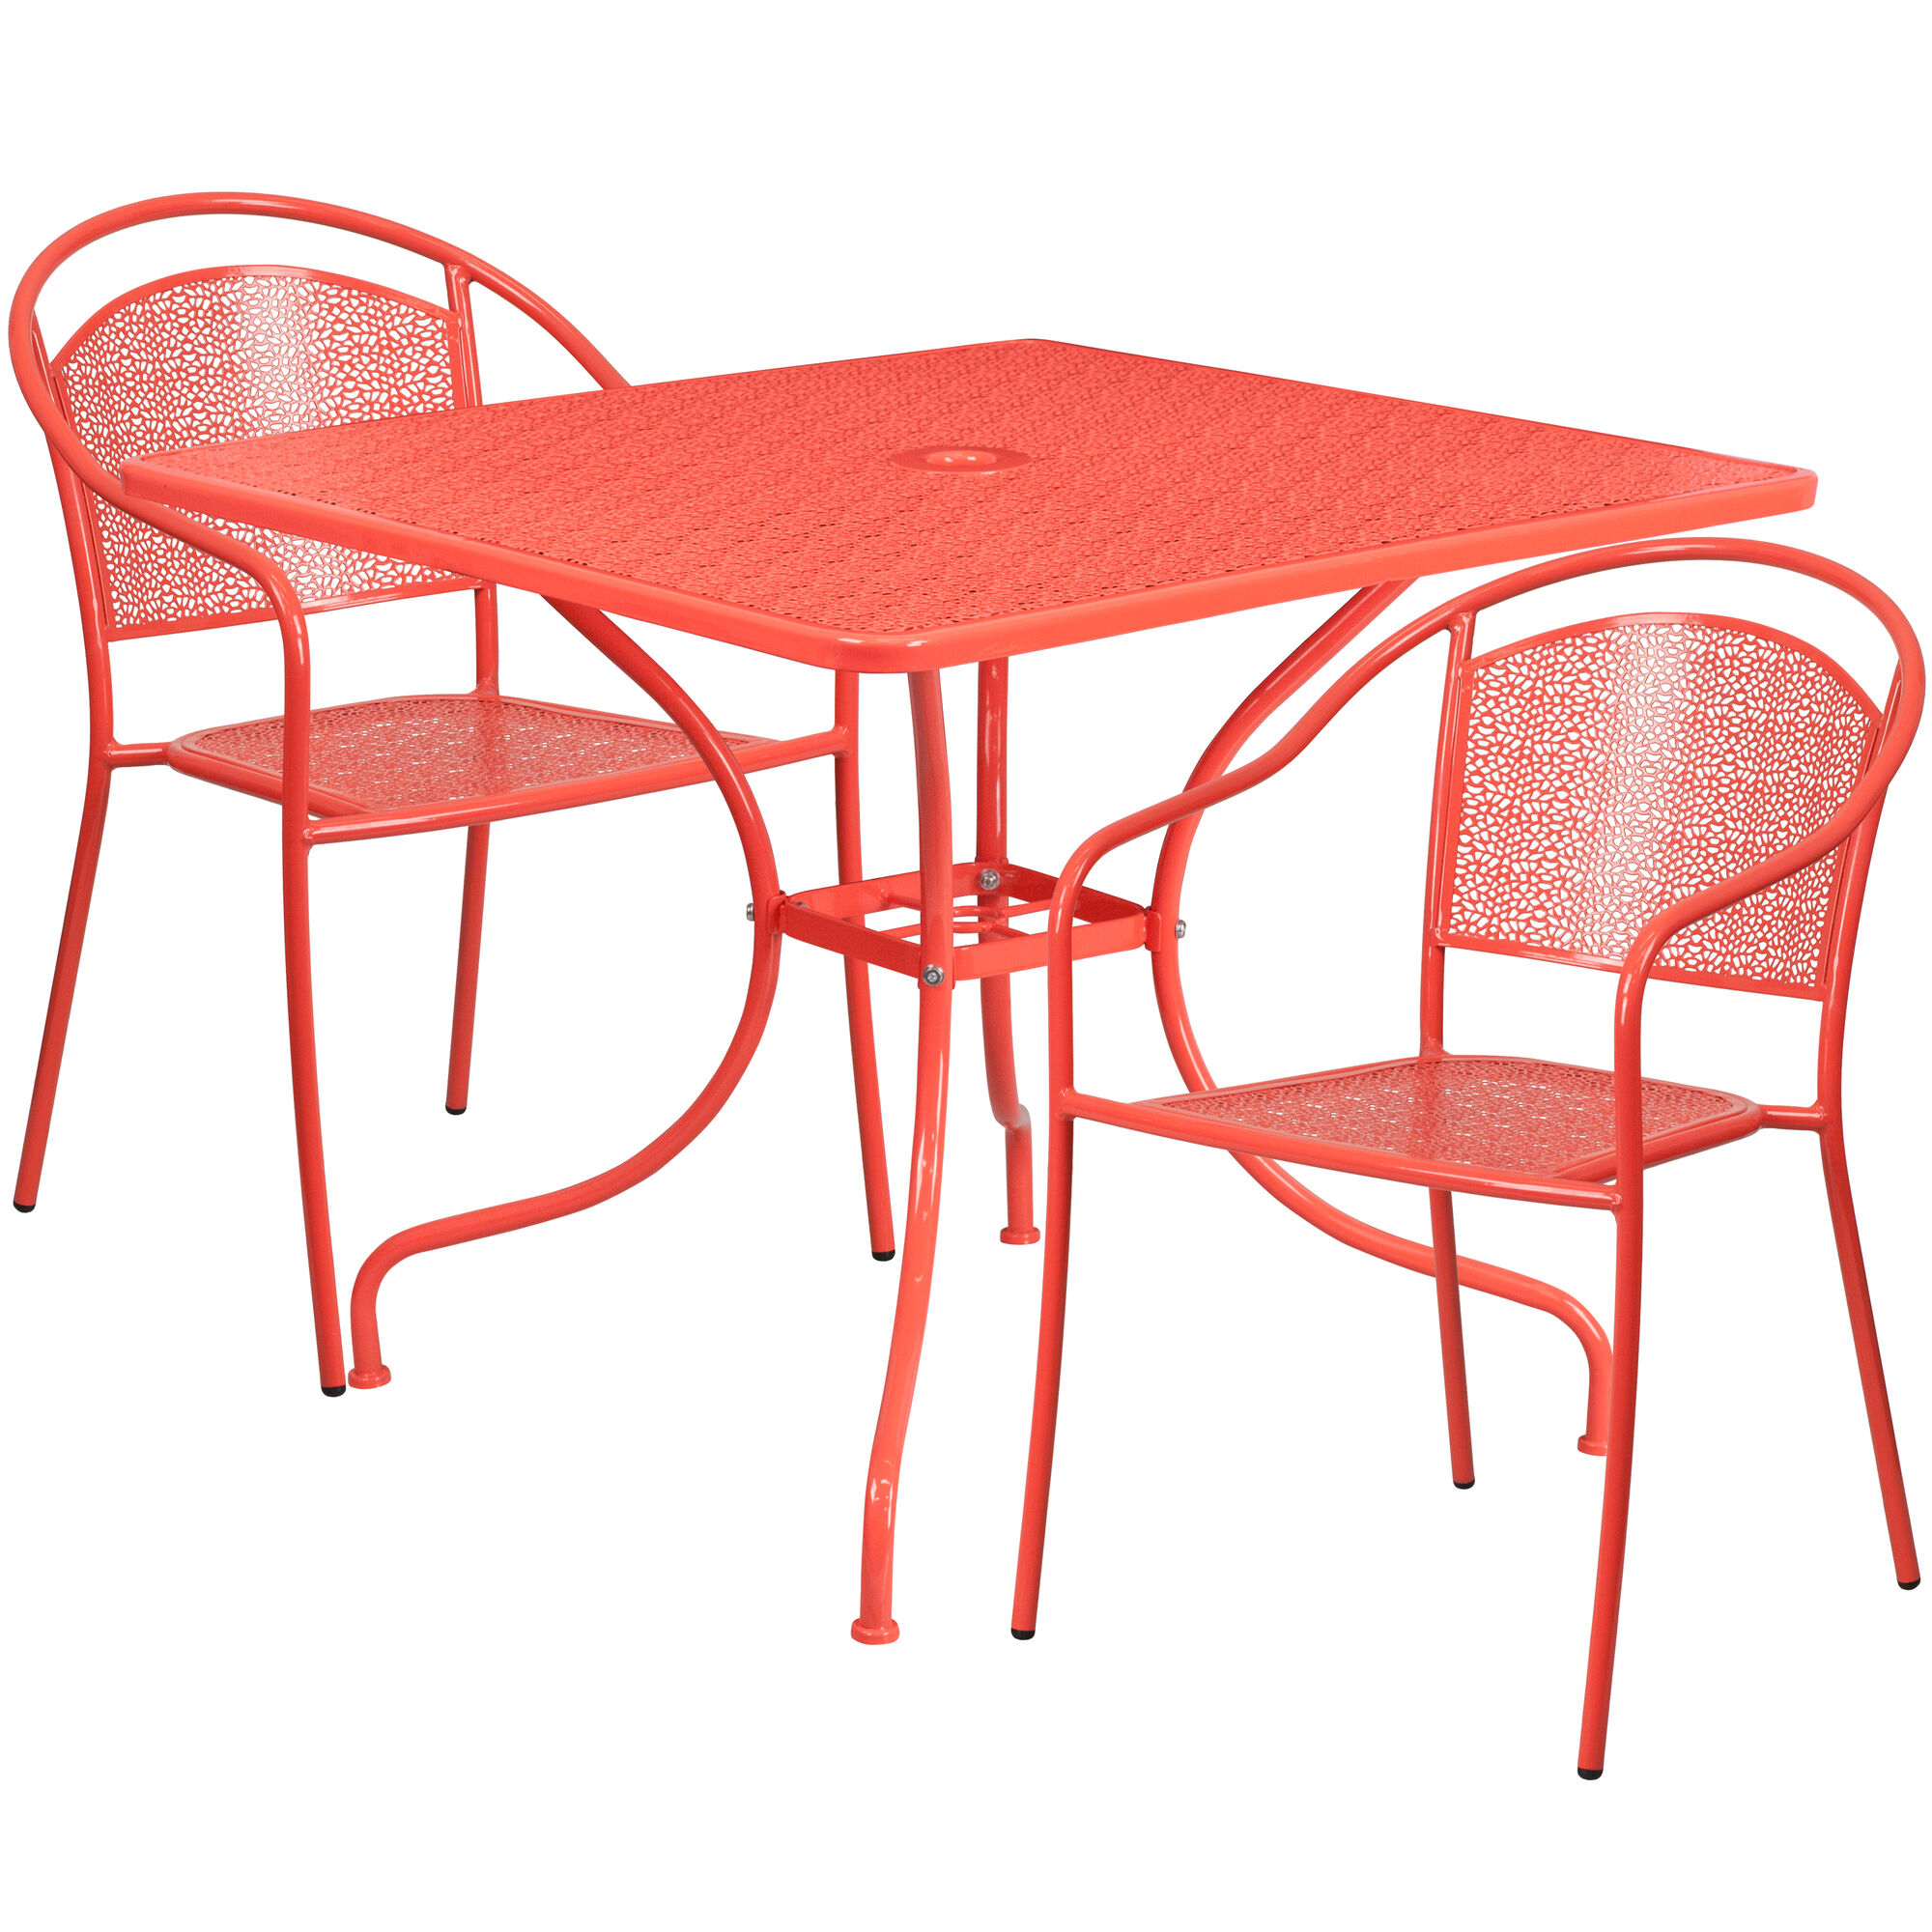 Flash furniture 35 5 39 39 square coral indoor outdoor steel for Furniture 35